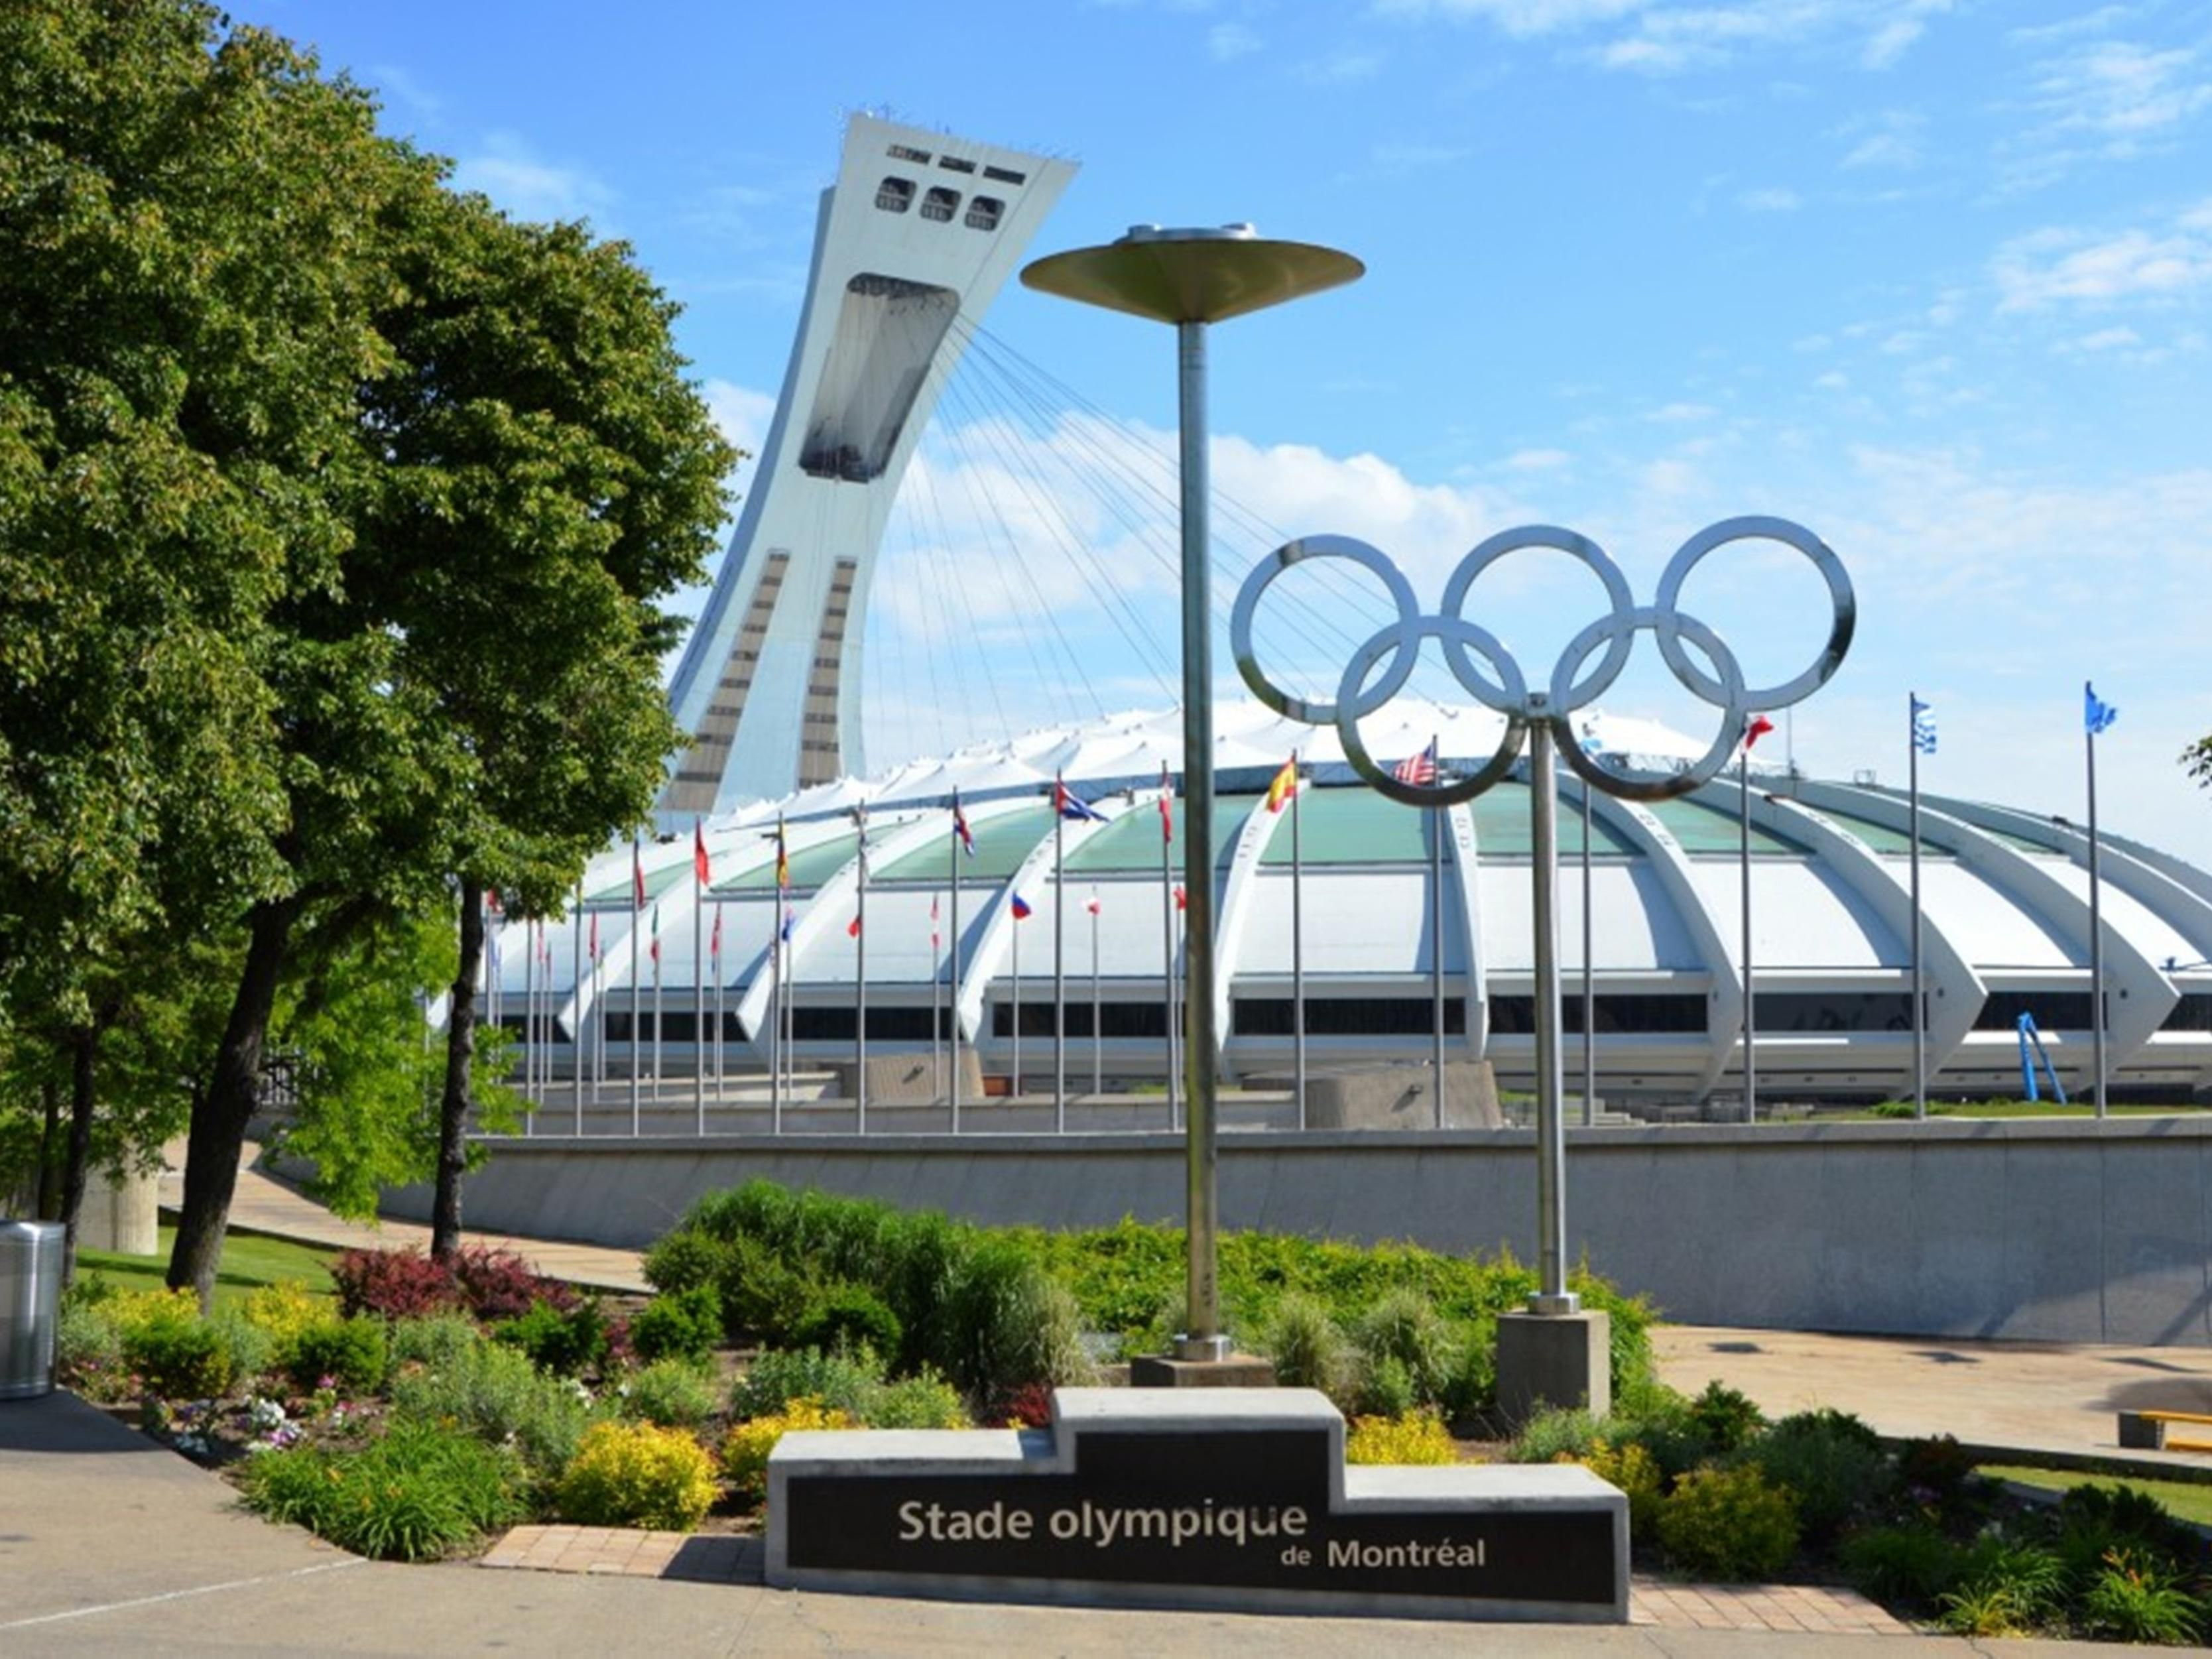 Olympic parc